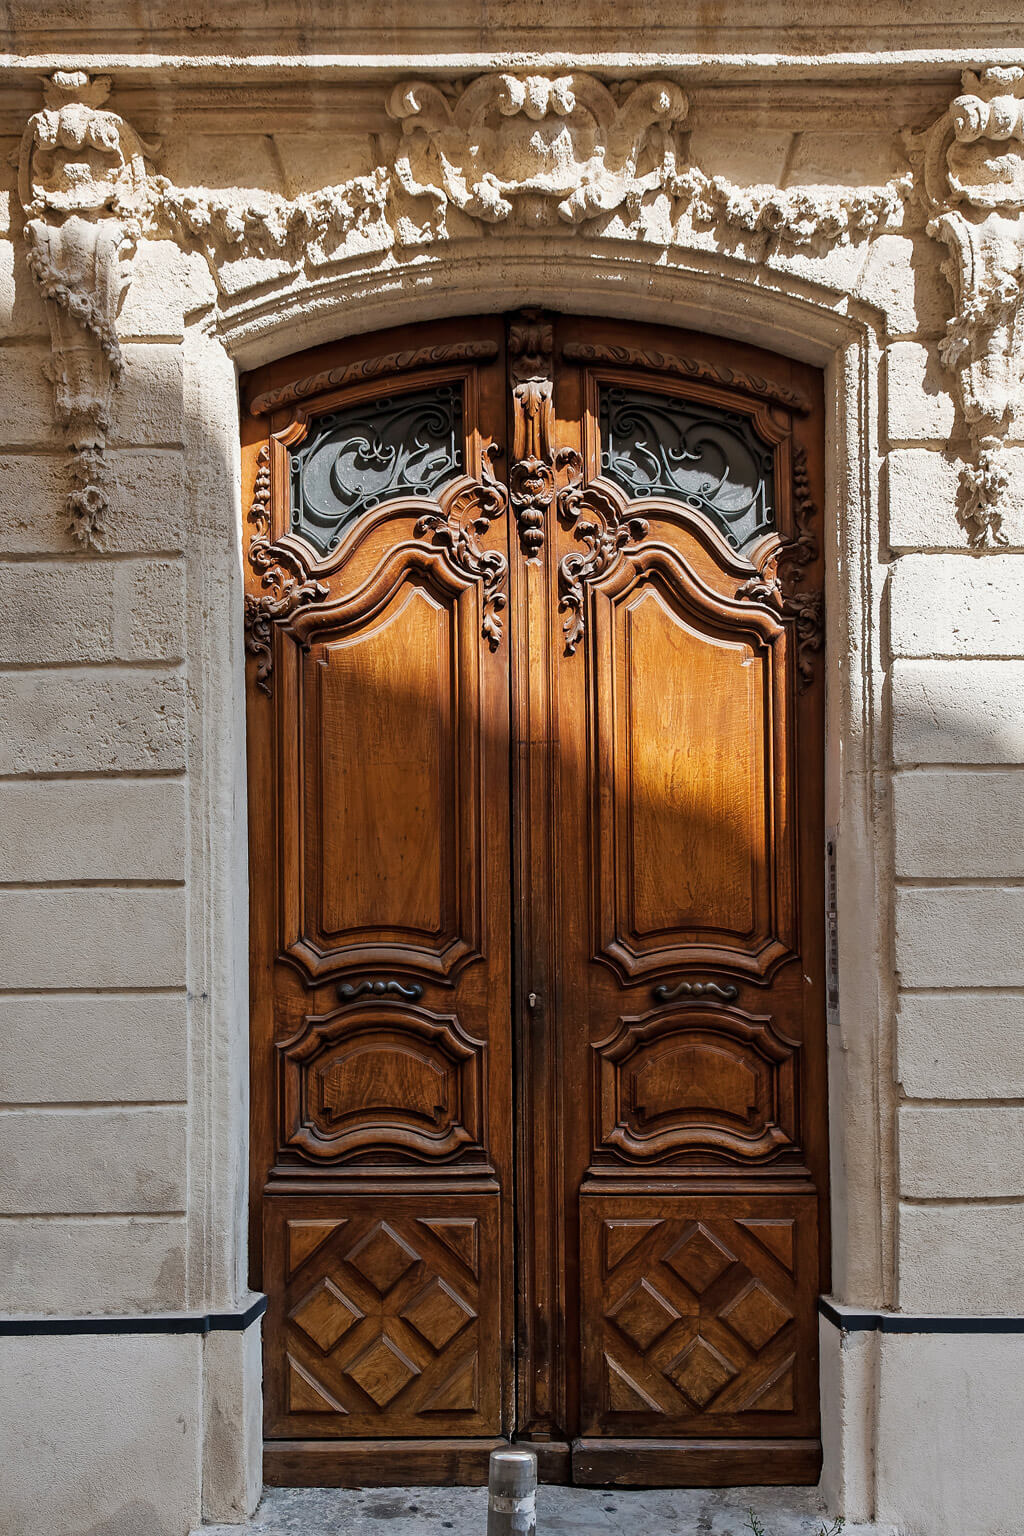 Magnificent antique French wood doors and limestone facade. Photo: Haven In.